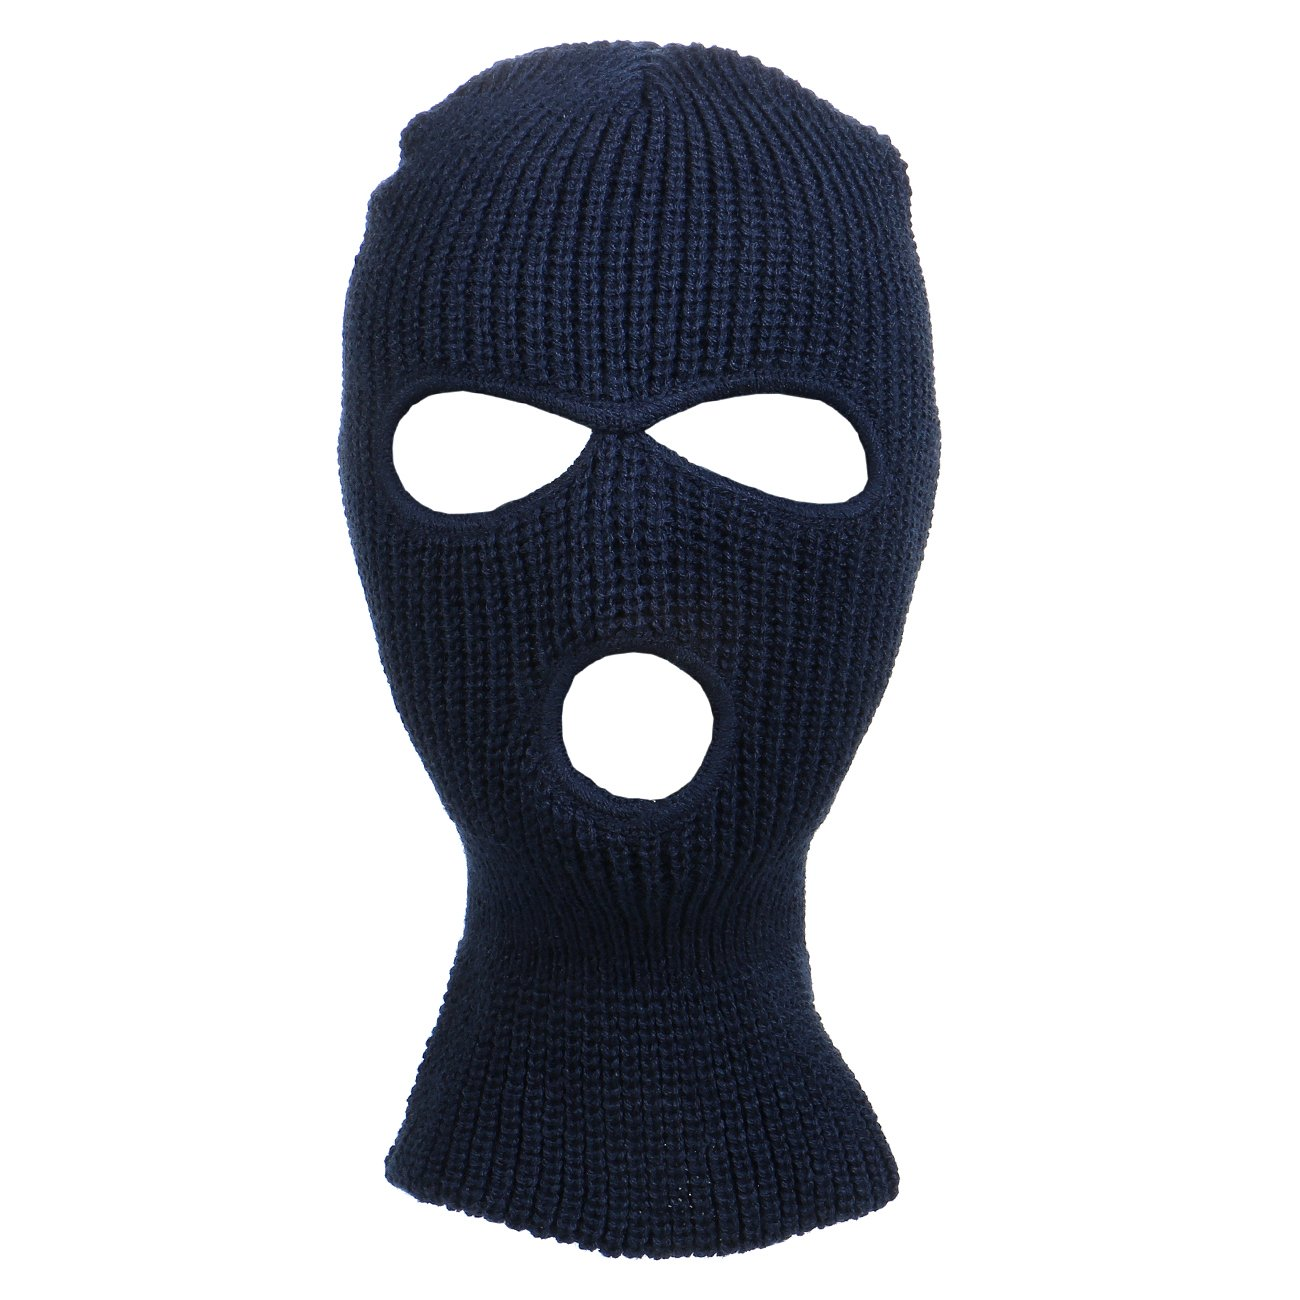 79836c600d2 Knitted 3-Hole Full Face Cover Ski Mask at Amazon Men s Clothing store